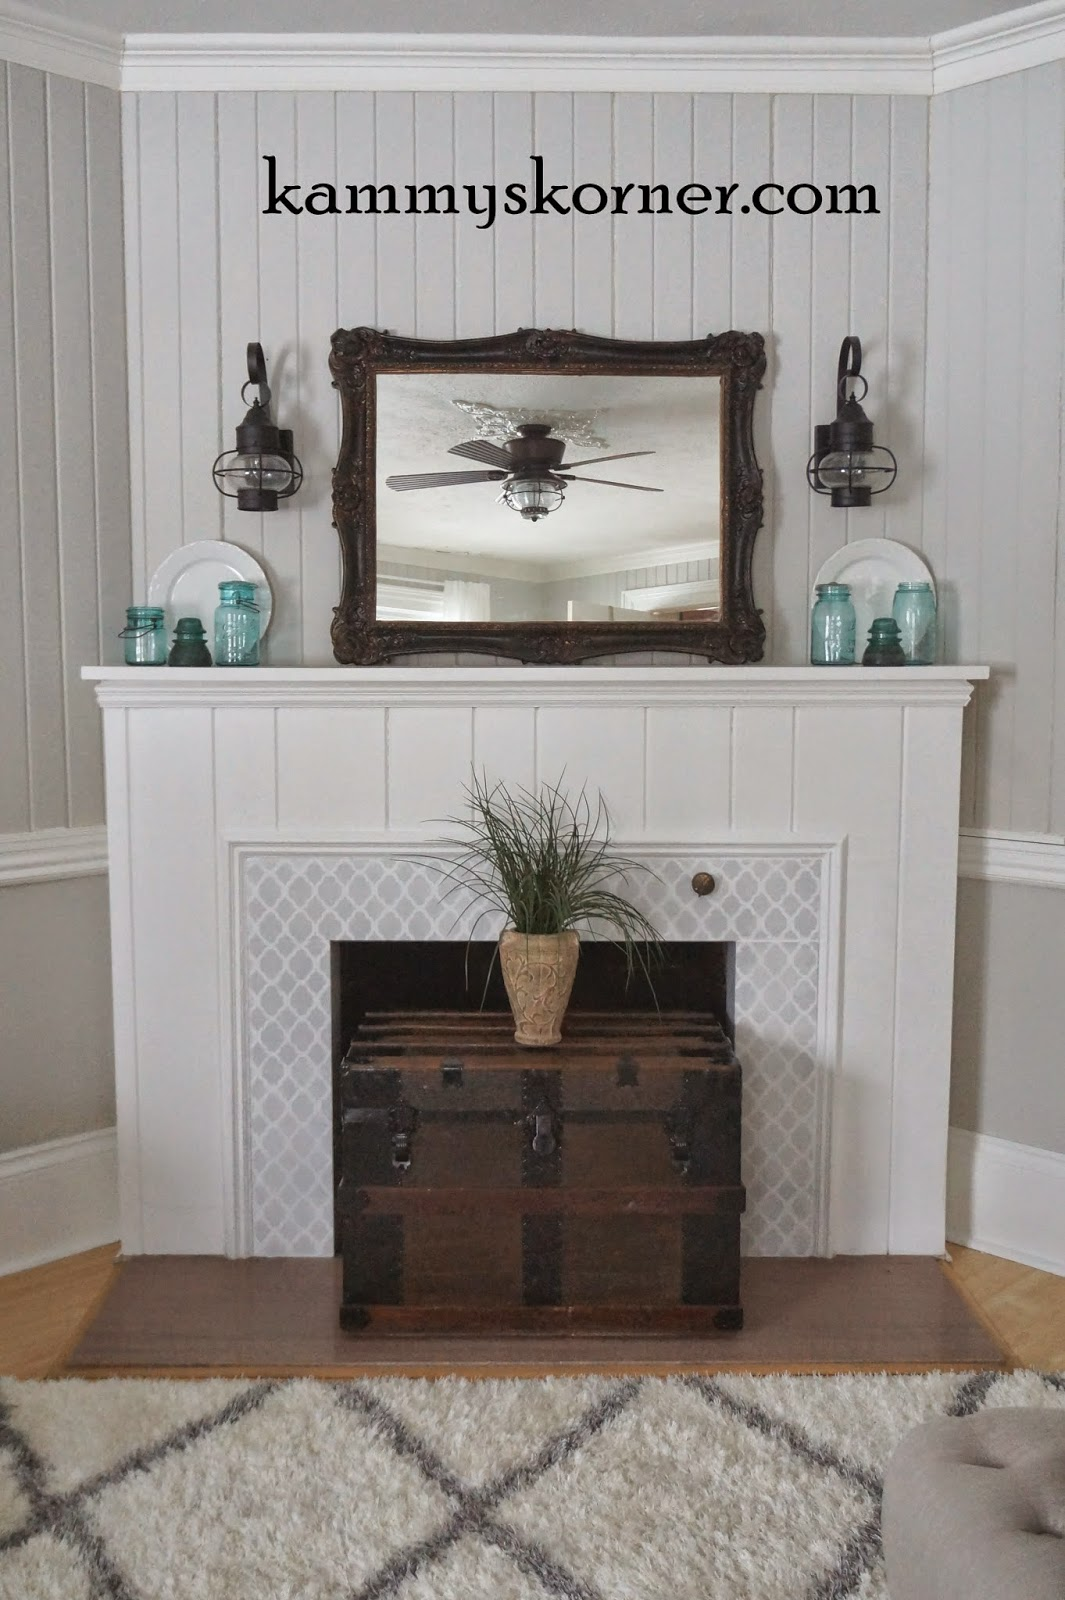 A Diy Painted Granite Fireplace Makeover Using The Rabat Craft Stencil